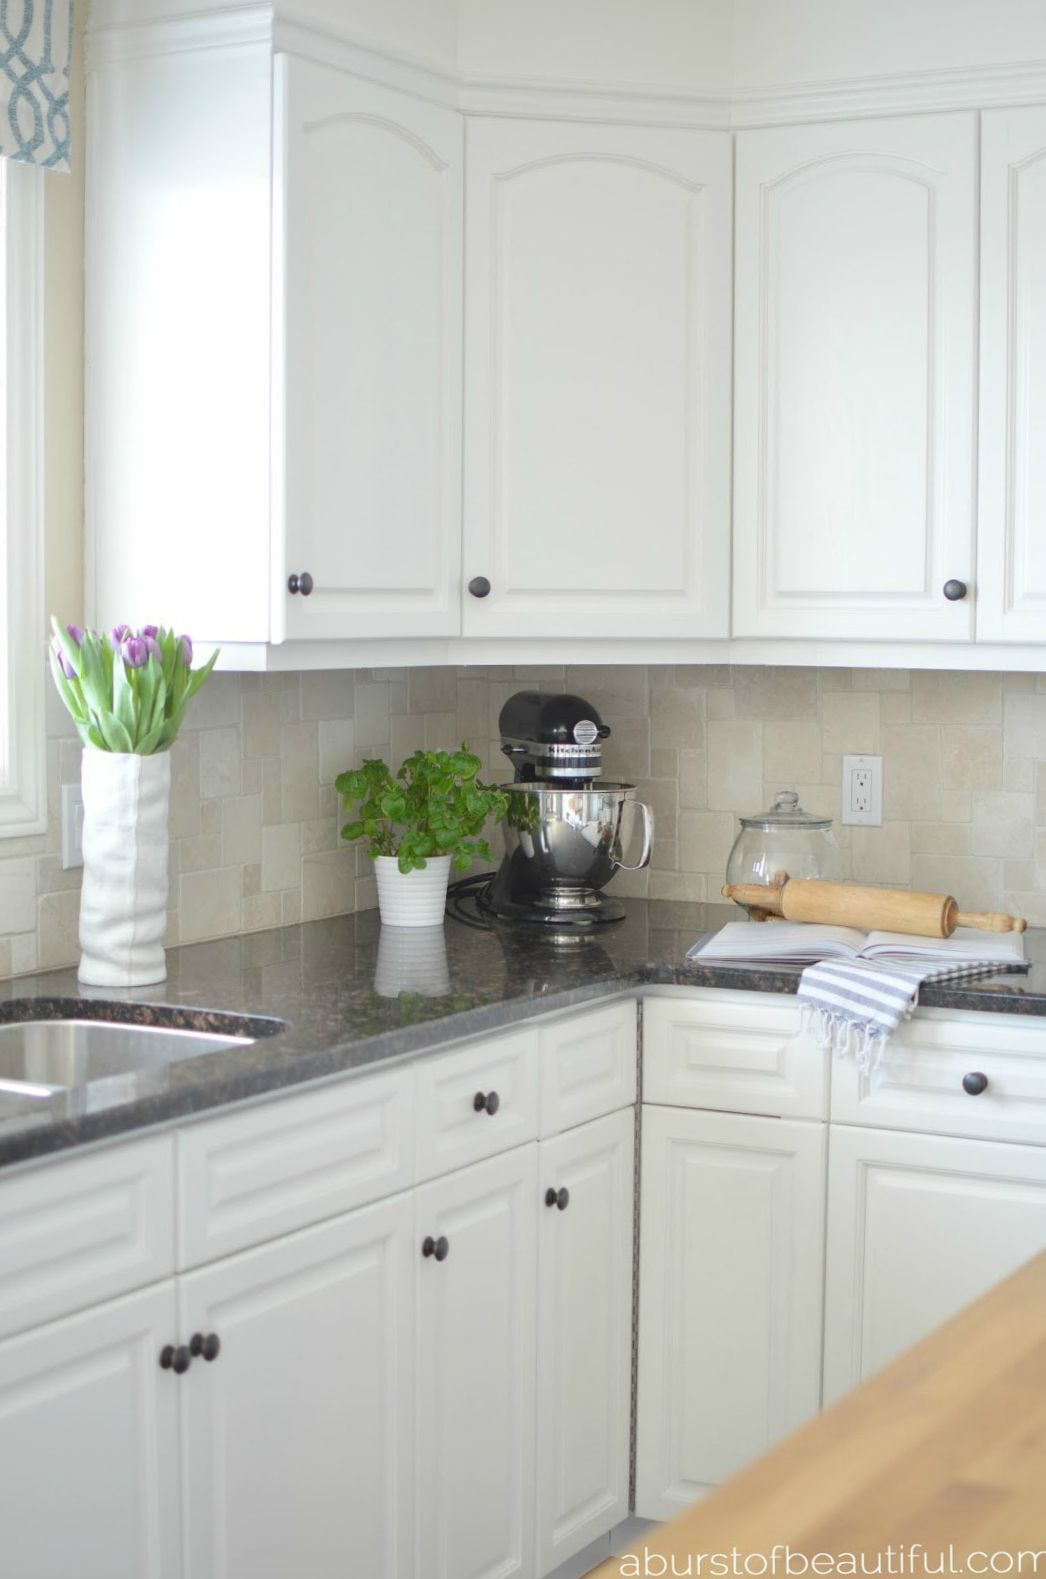 How To Paint Kitchen Cabinets Refreshed Designs Painting Kitchen Cabinets Kitchen Paint Kitchen Cabinets Parts